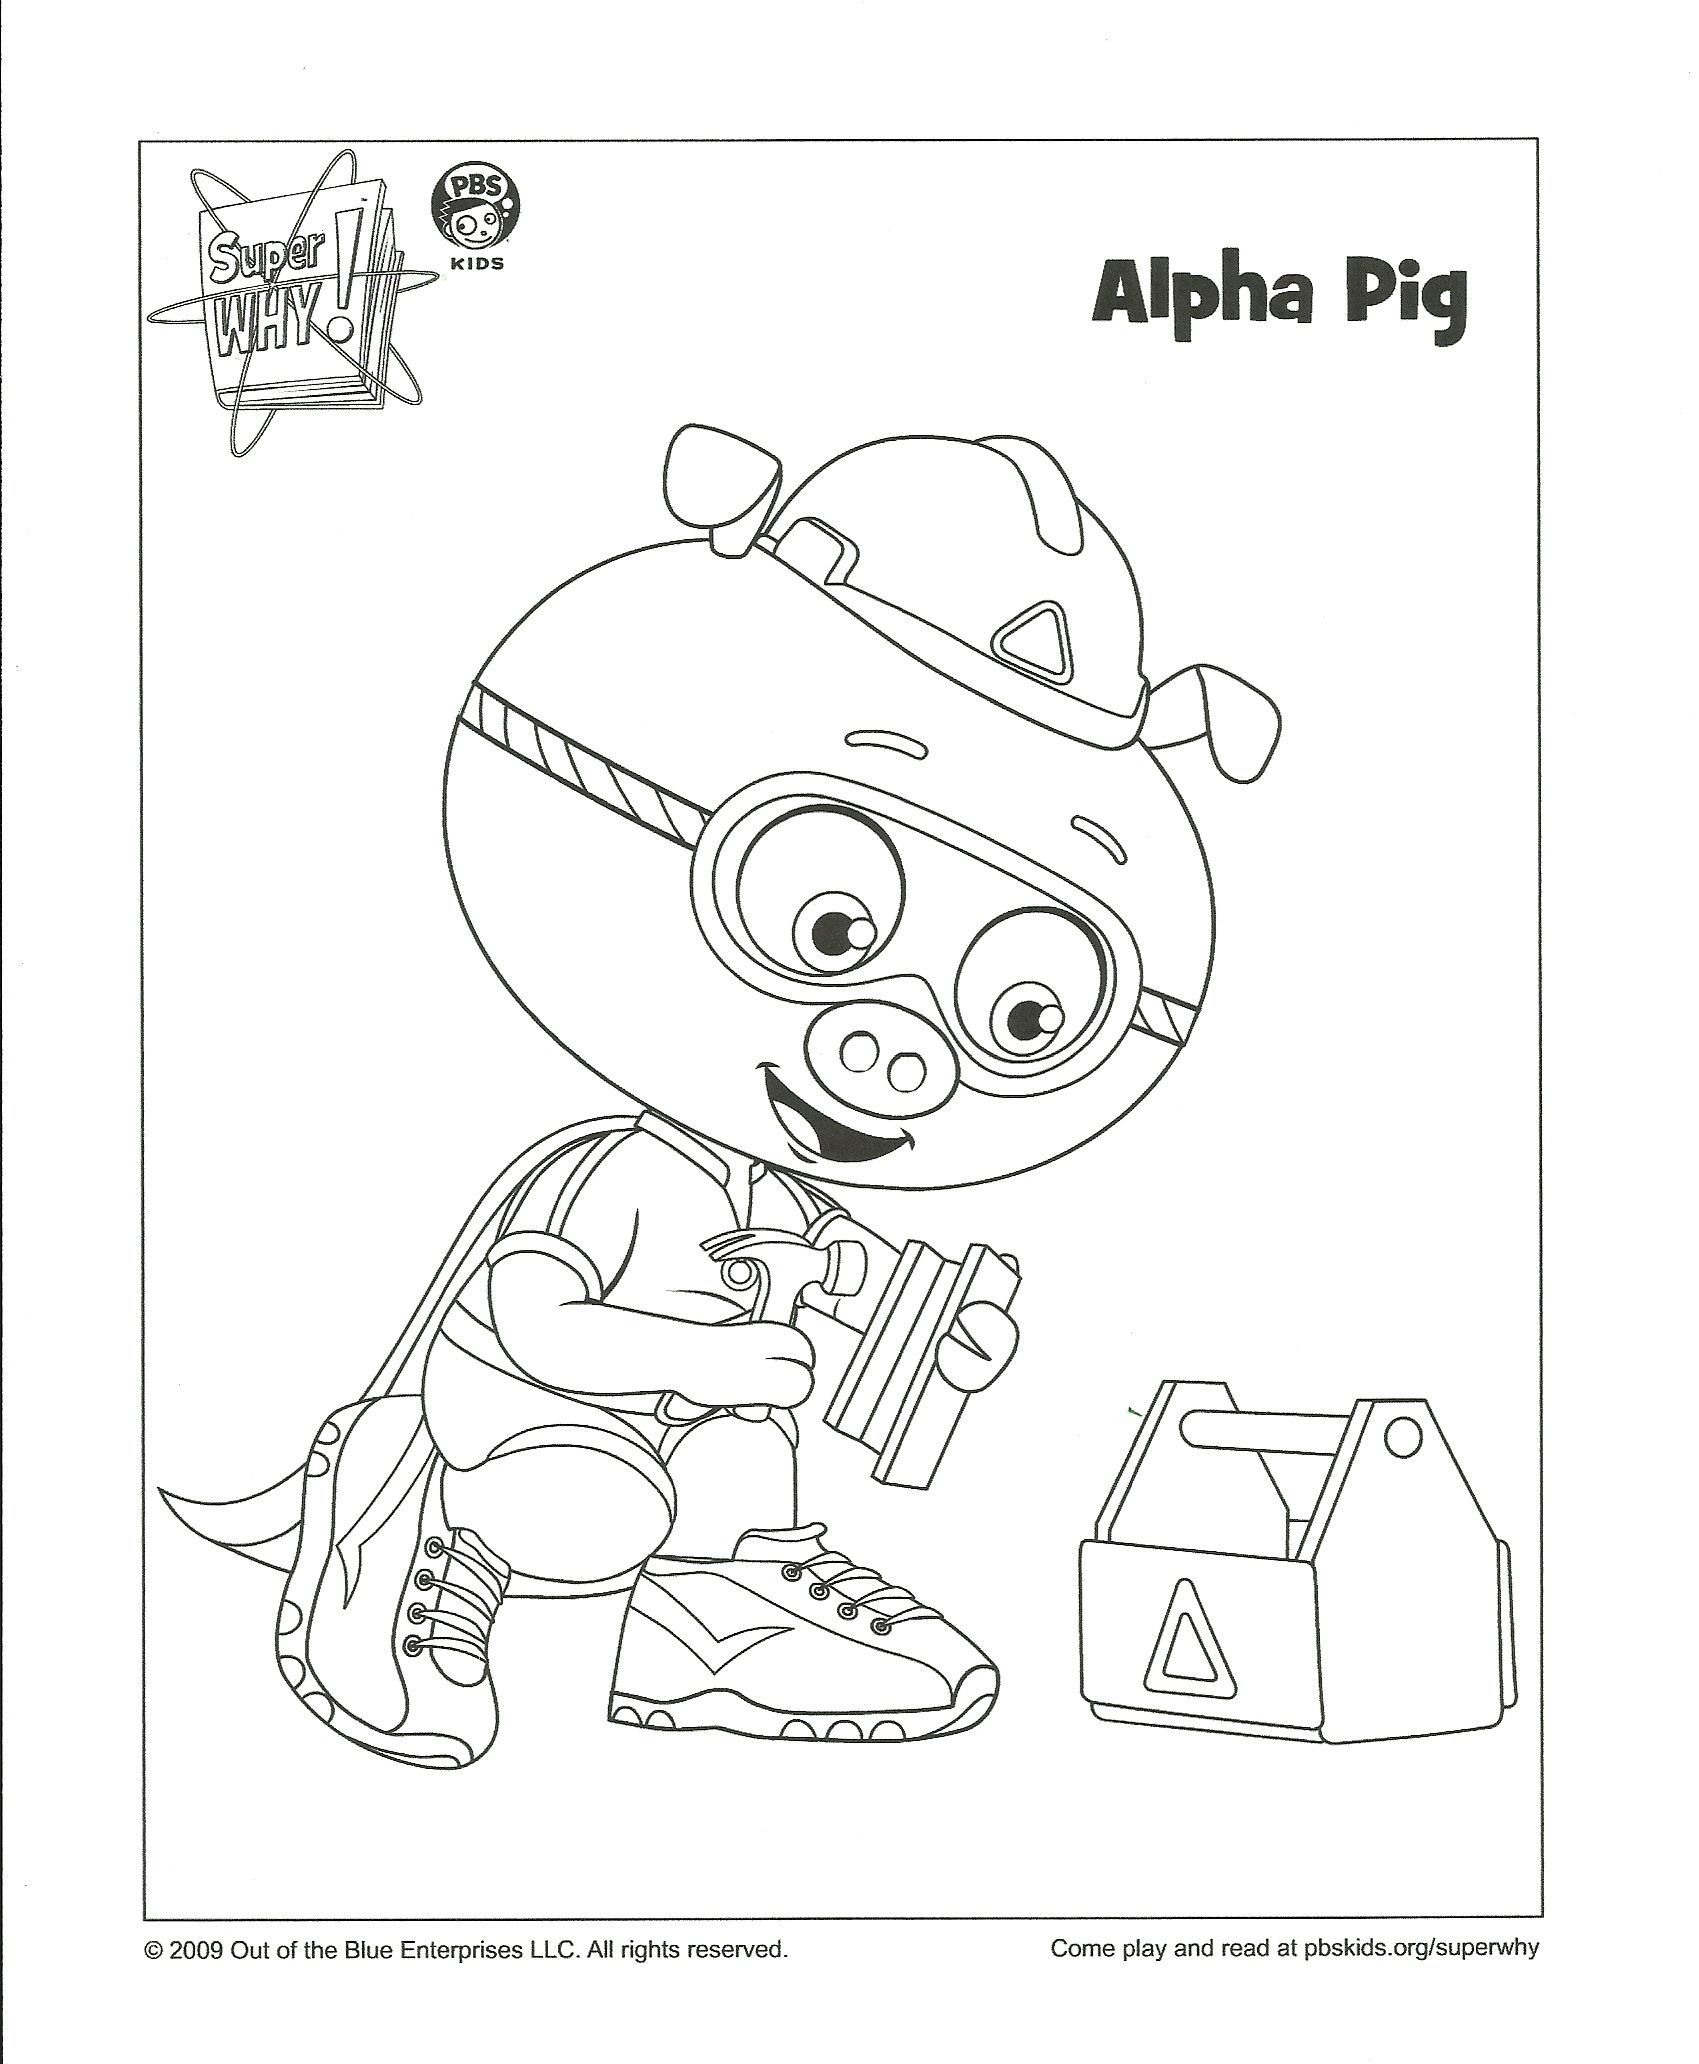 Alpha Pig Coloring Page  Super why, Coloring pages for boys, Kids